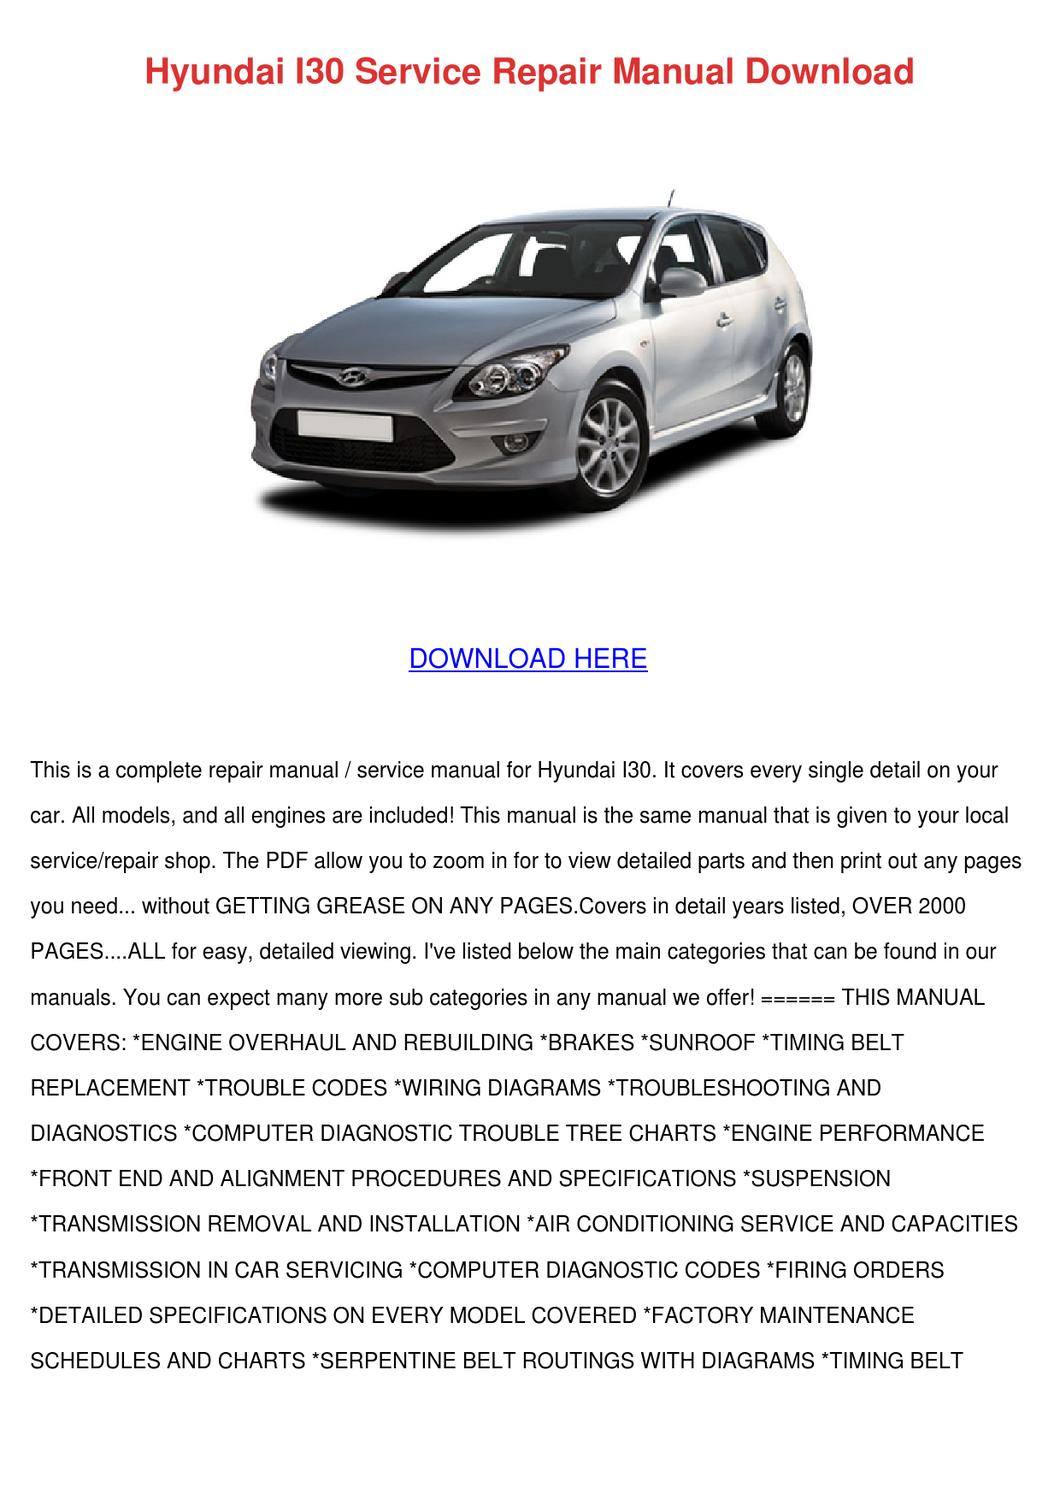 hyundai i30 2010 service manual